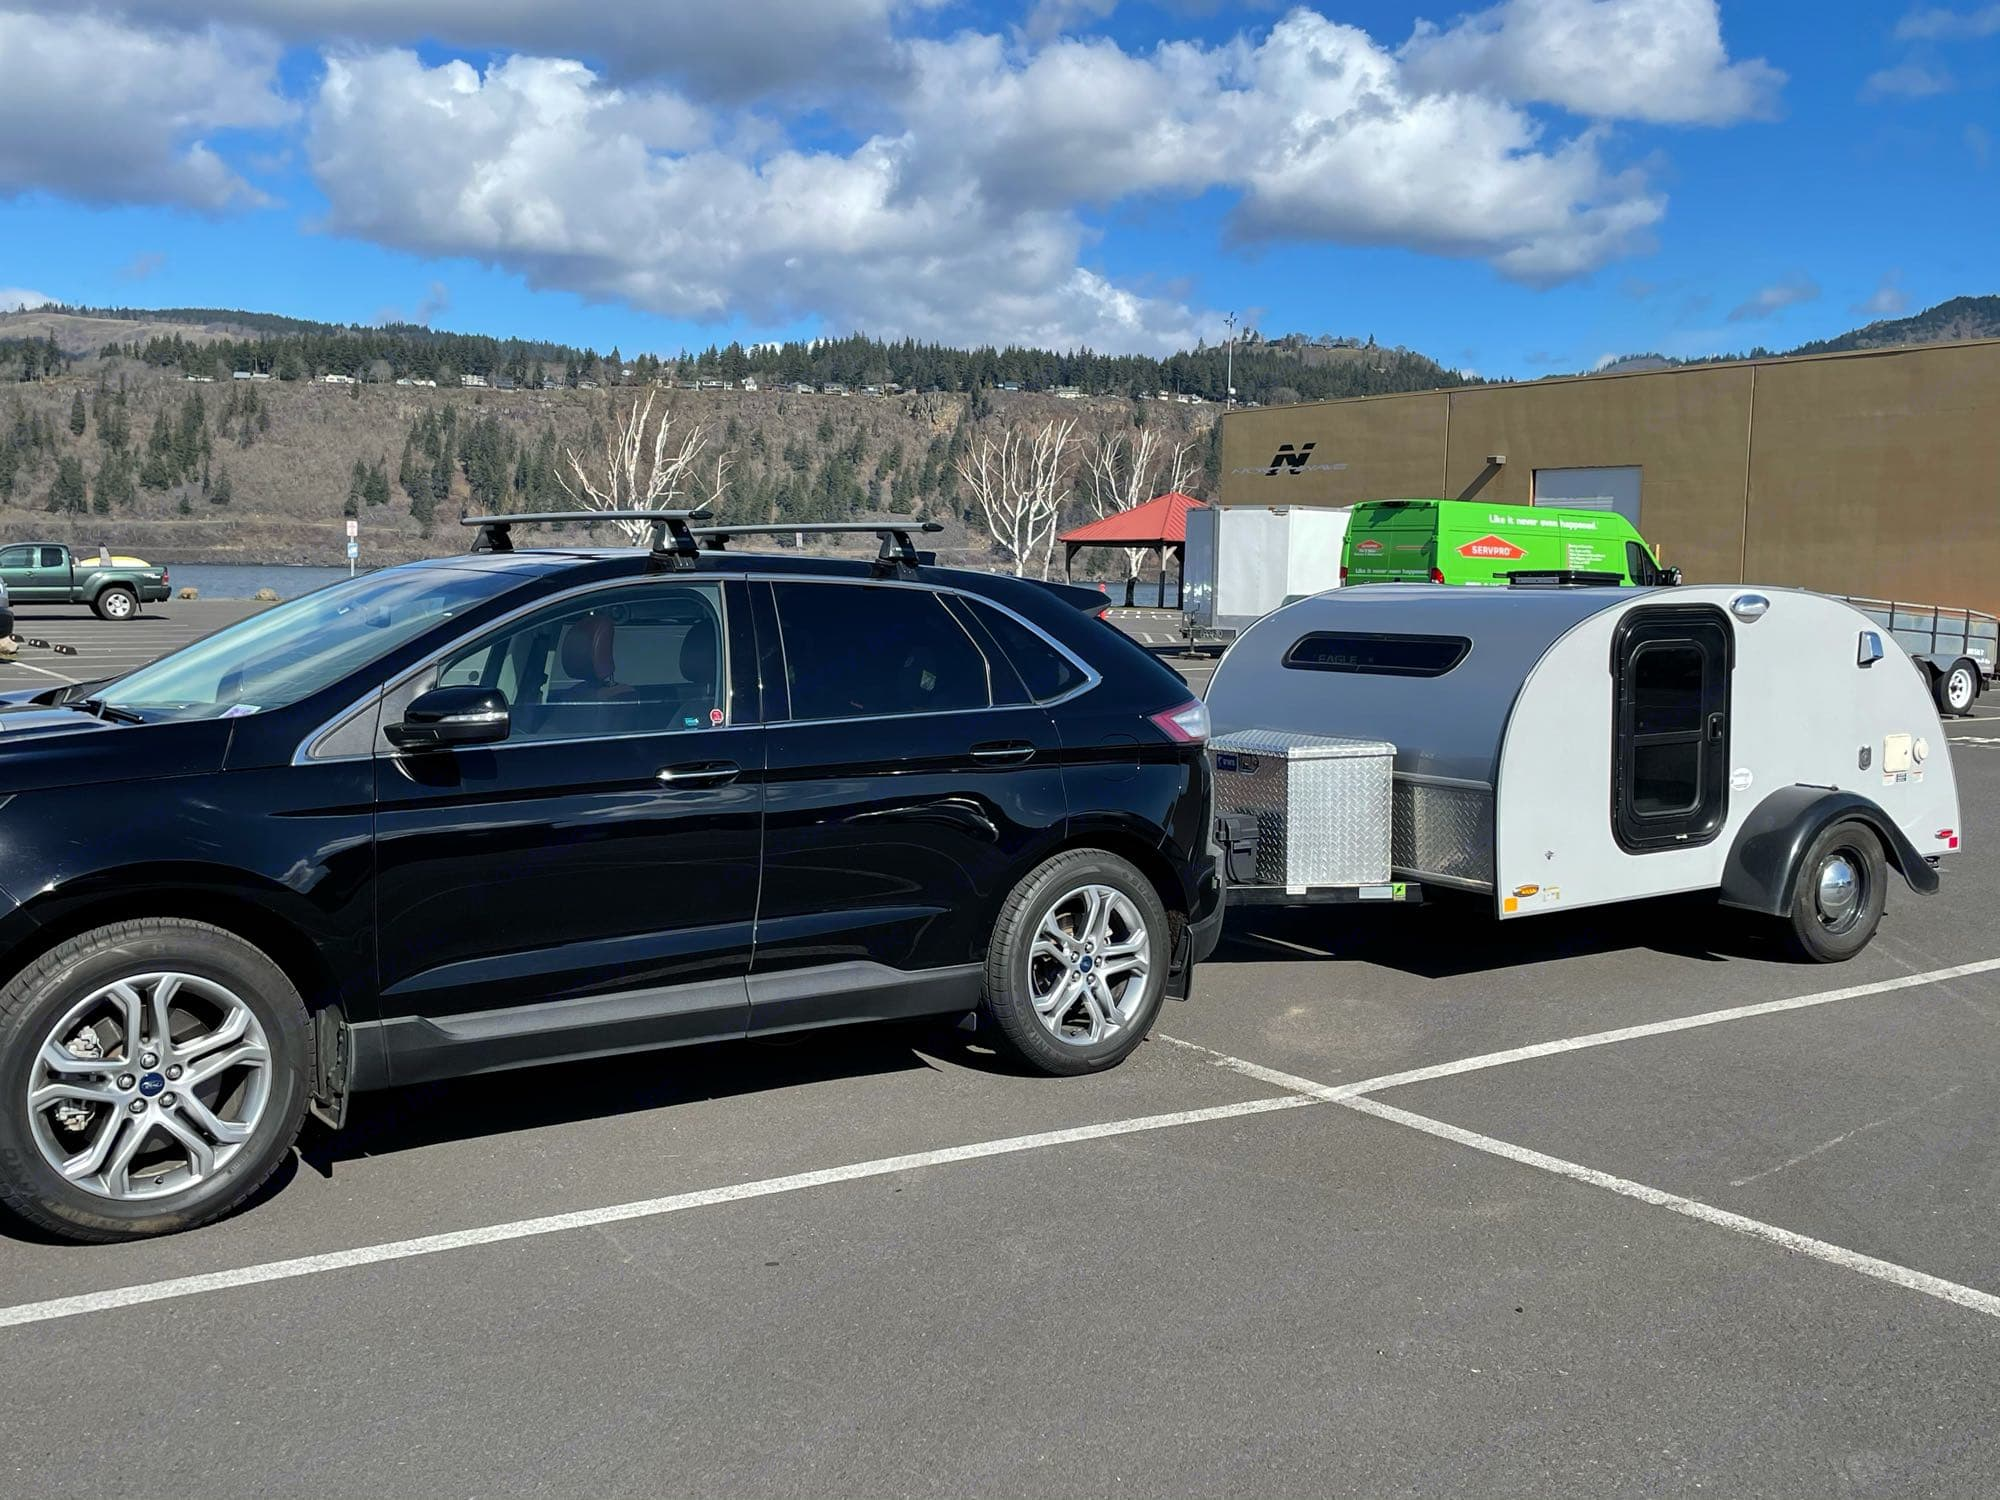 Dragged is minimized when your trailer matches the height and width of the vehicle. Little Guy Silver Shadow 2016